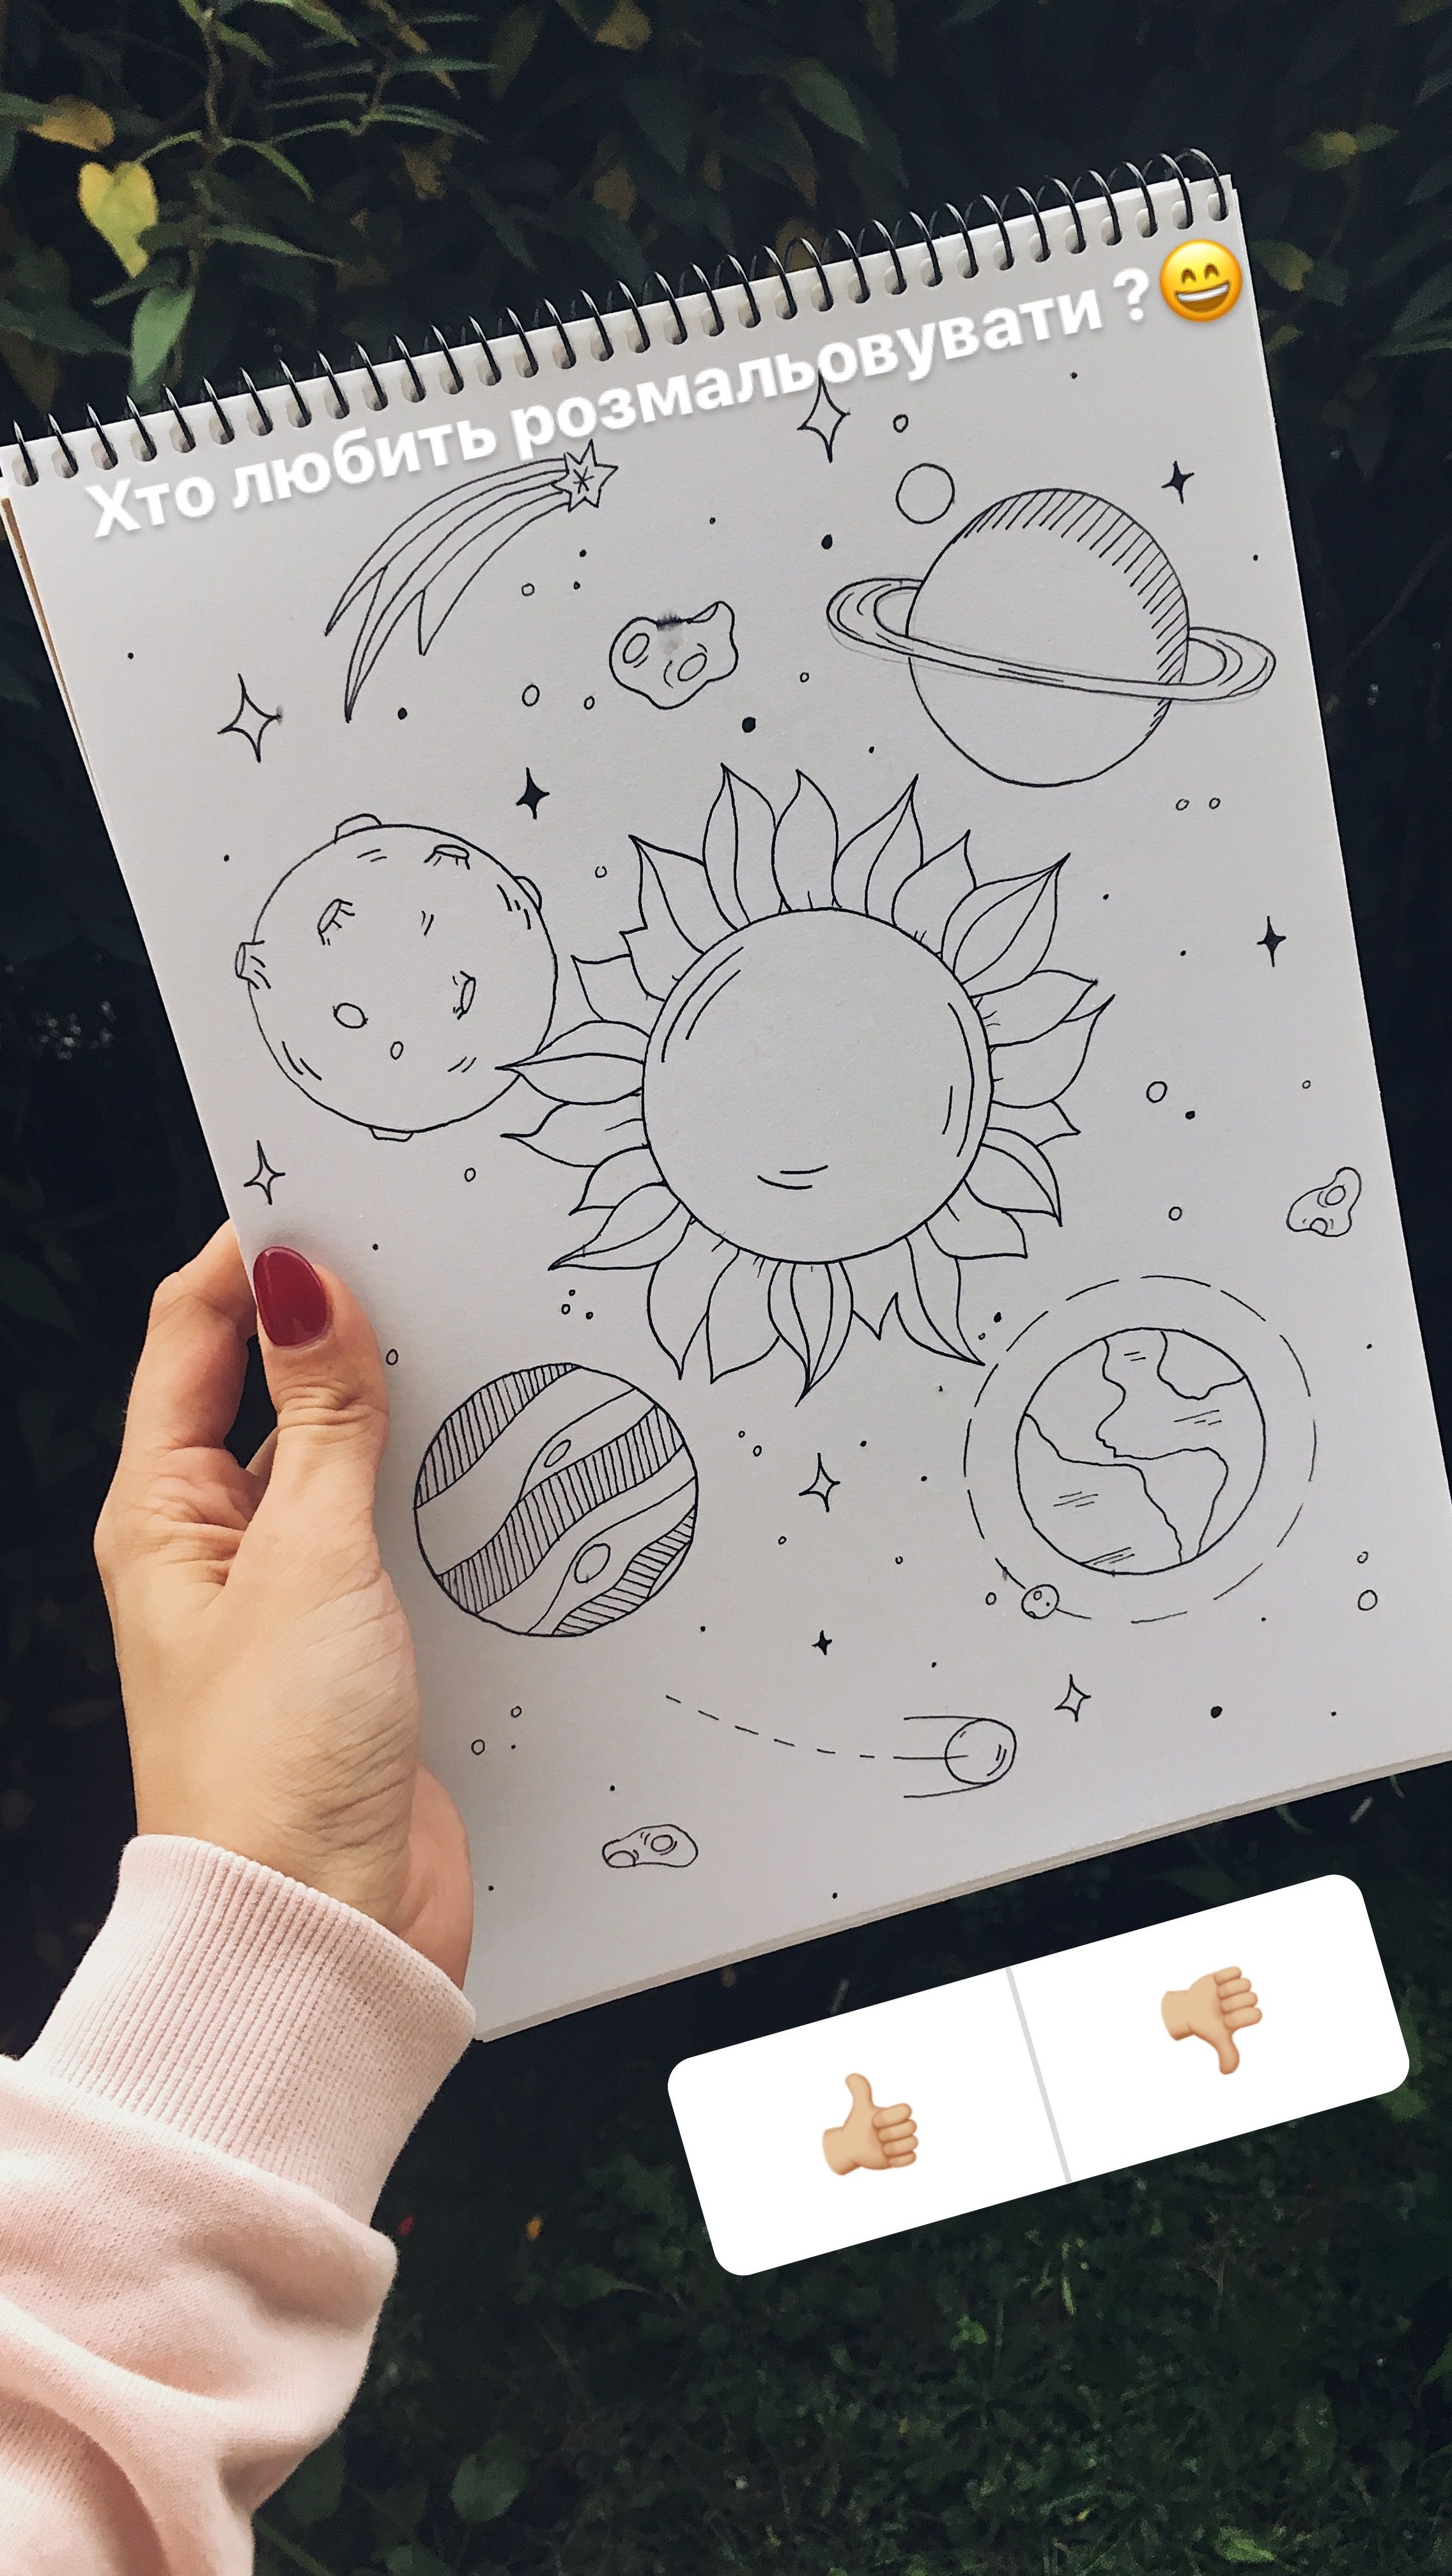 Solar system painting · скрапбукинг drawings of tattoos art drawings cute doodles drawings cute drawings tumblr